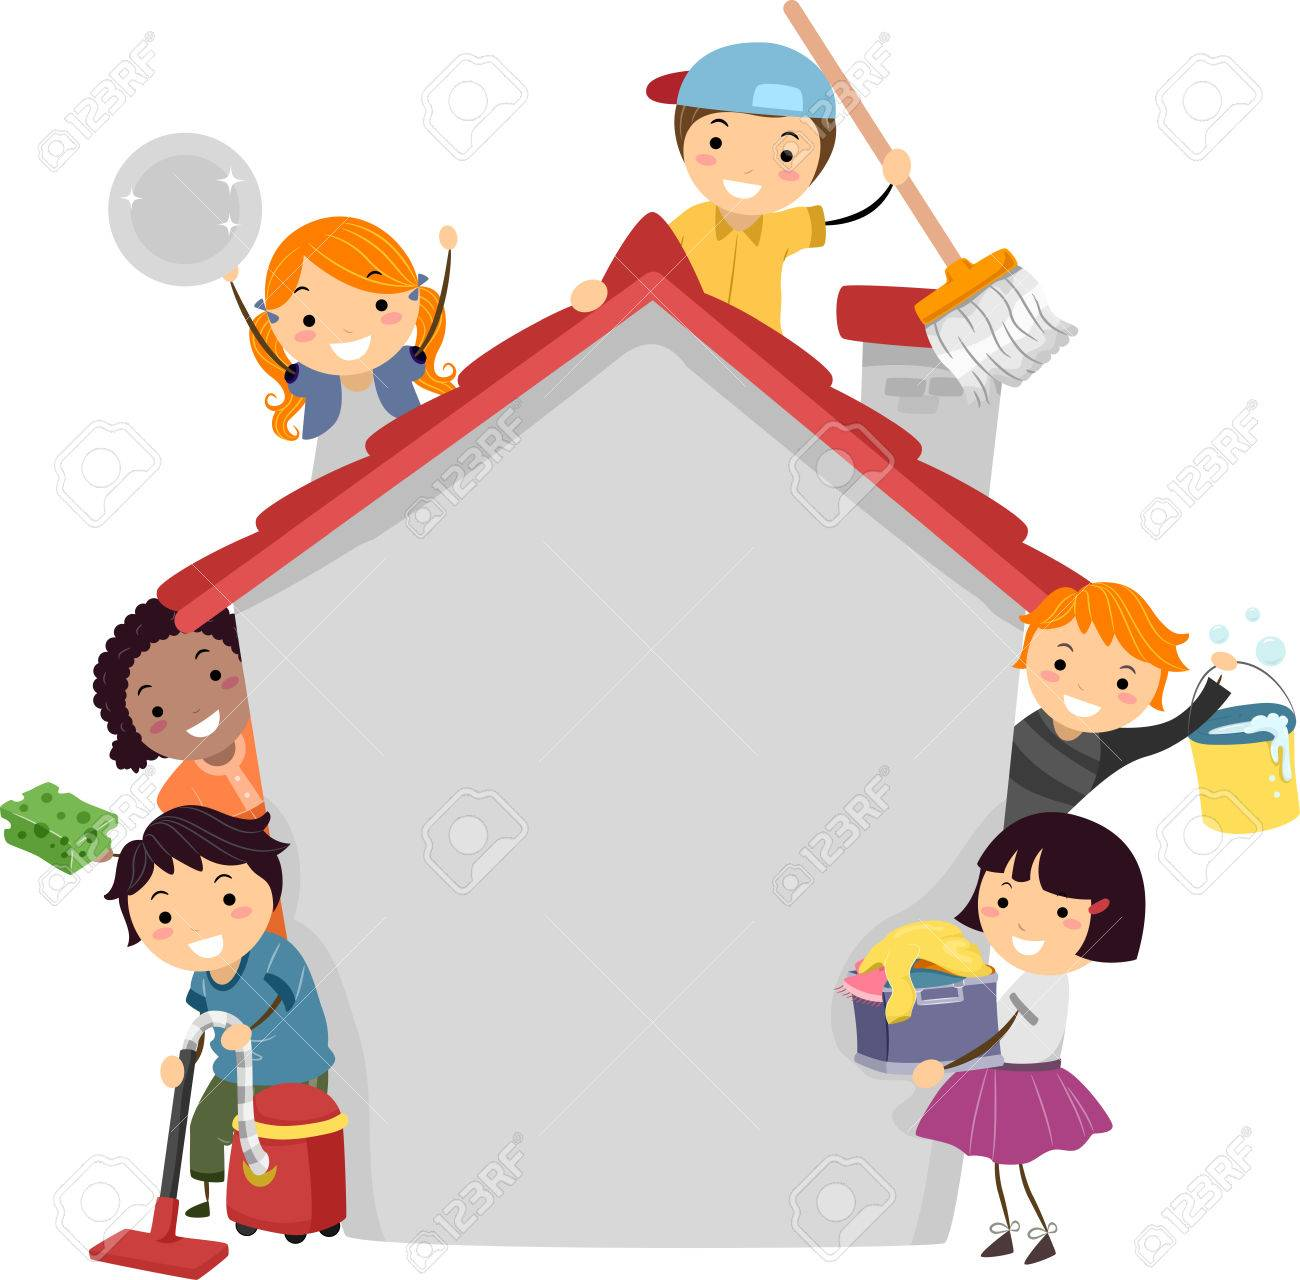 1300x1280 Stickman Illustration Of Kids Doing Different Chores Stock Photo